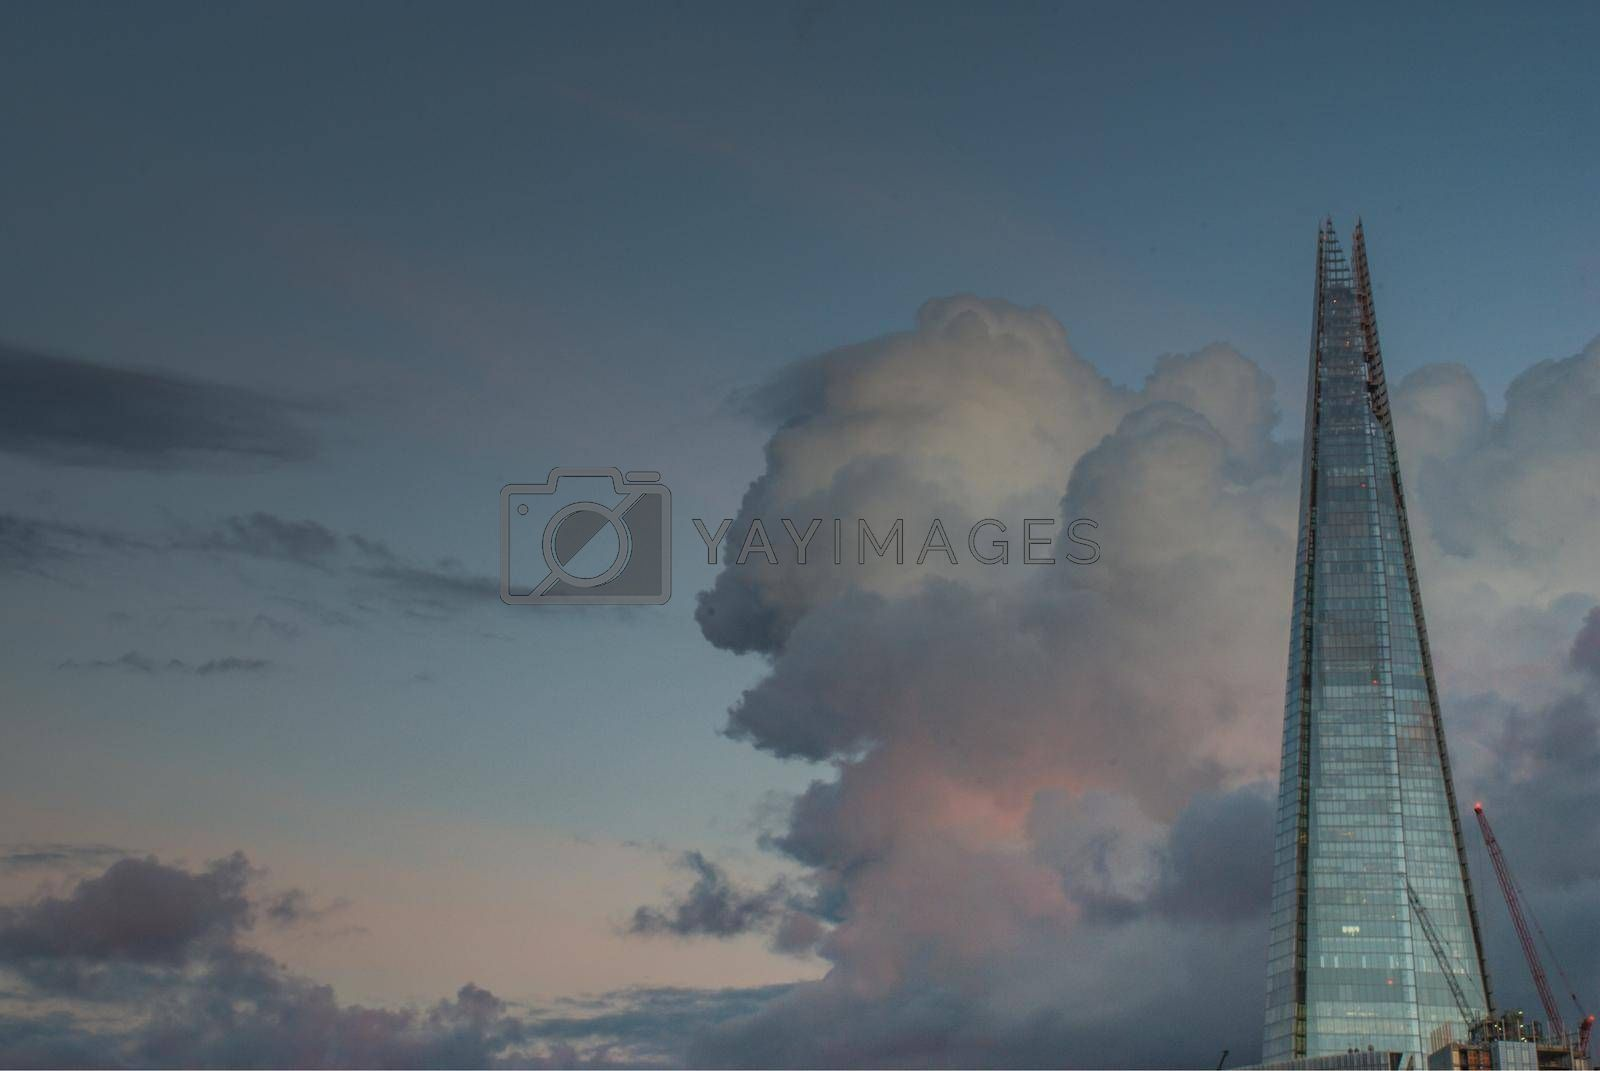 London, United Kingdom - April 17, 2019 : London and Shard, which is the tallest building in the city There is a backdrop of beautiful sky and clouds.